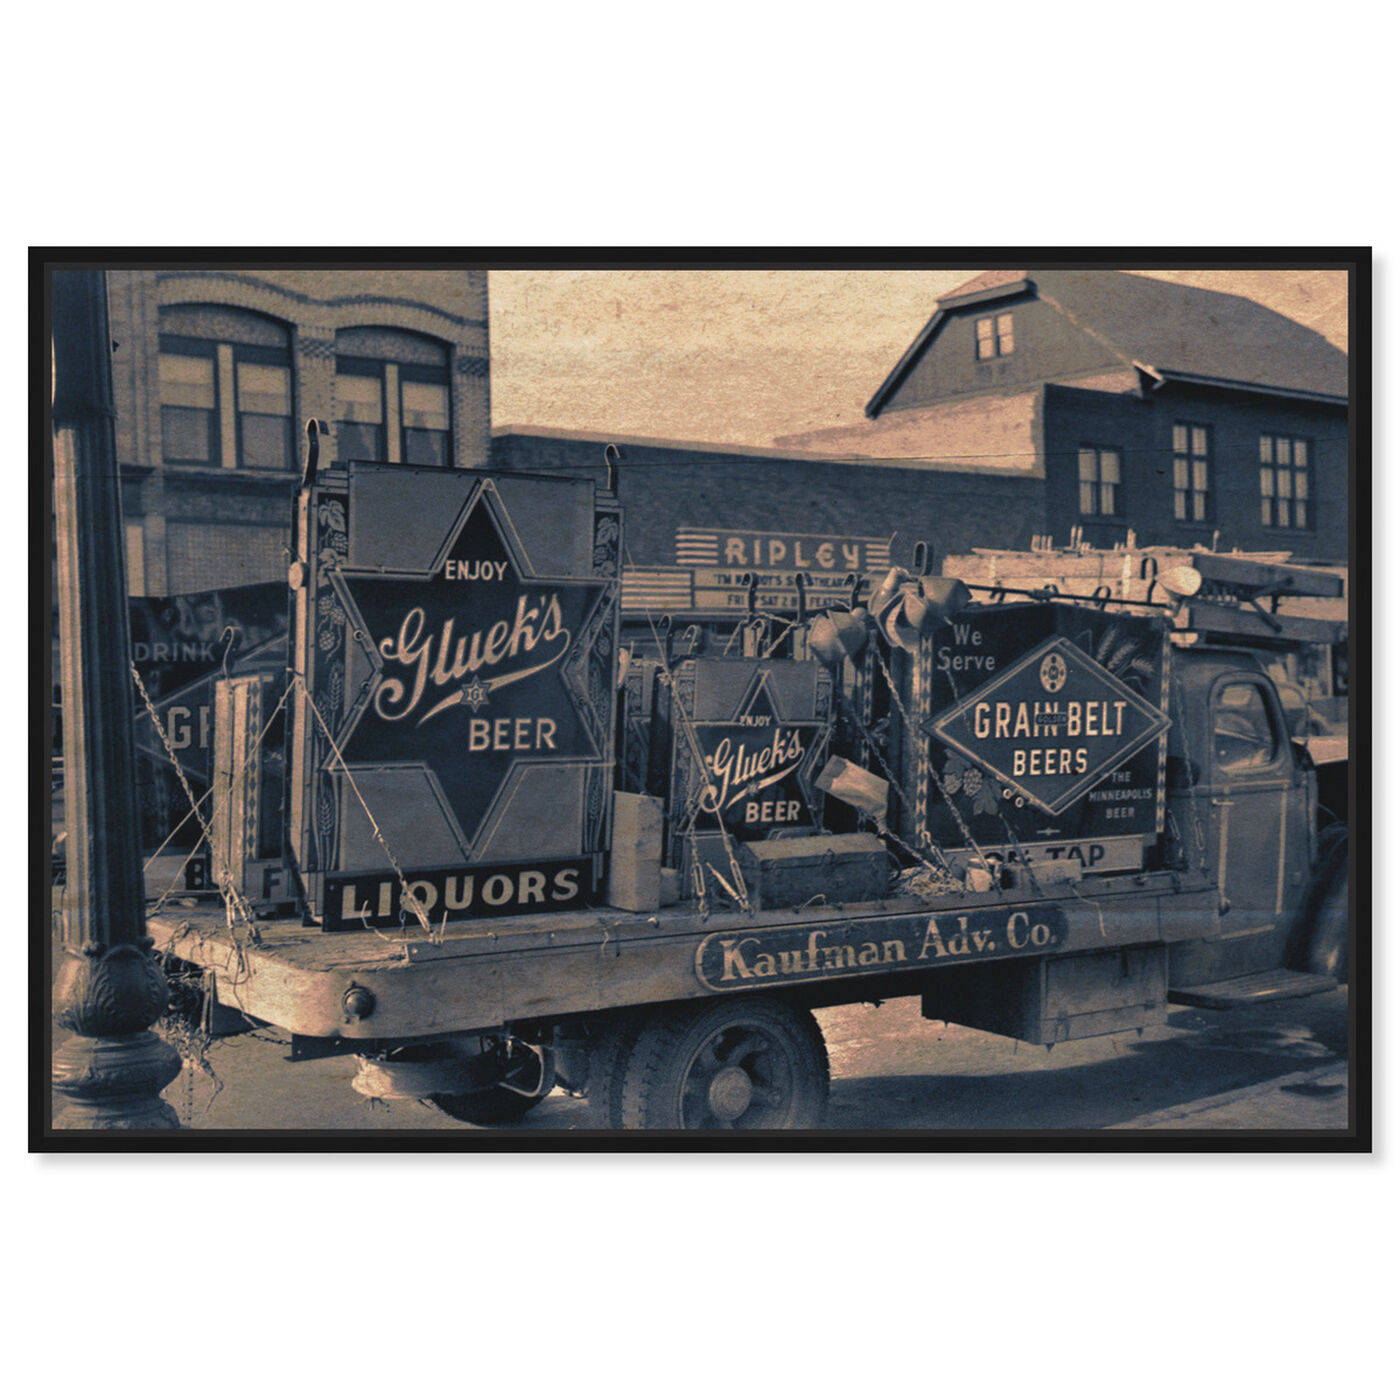 Front view of Beer Truck featuring drinks and spirits and beer art.